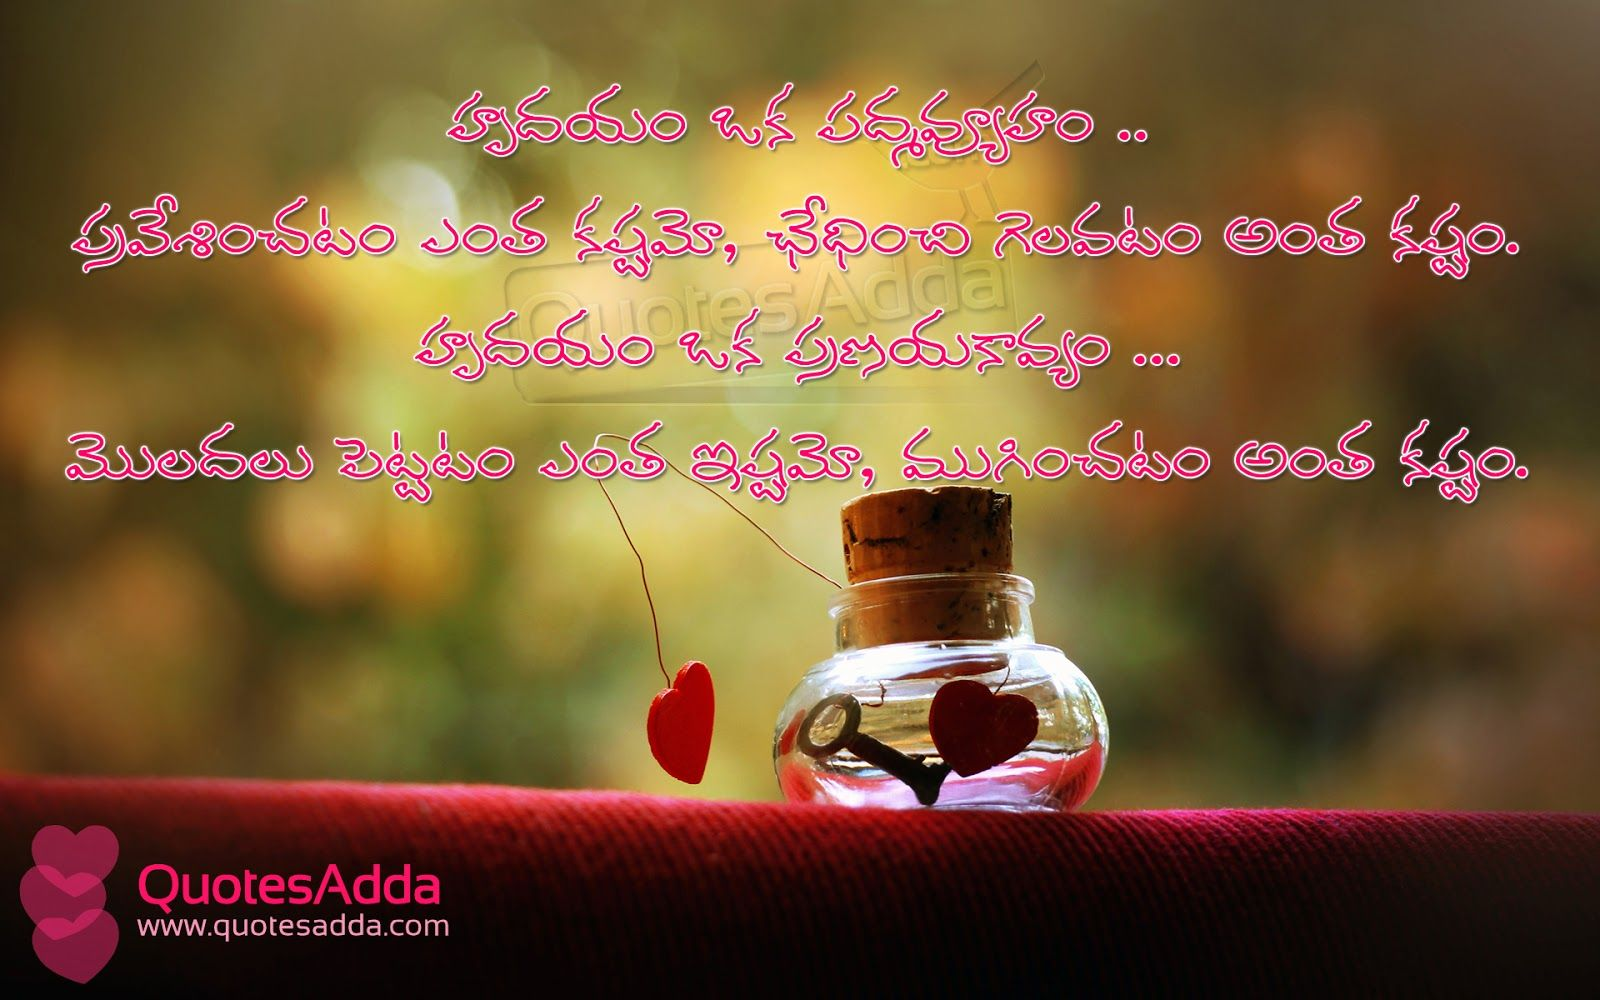 Beautiful Telugu Love Quotation | QuotesAdda com | Telugu Quotes